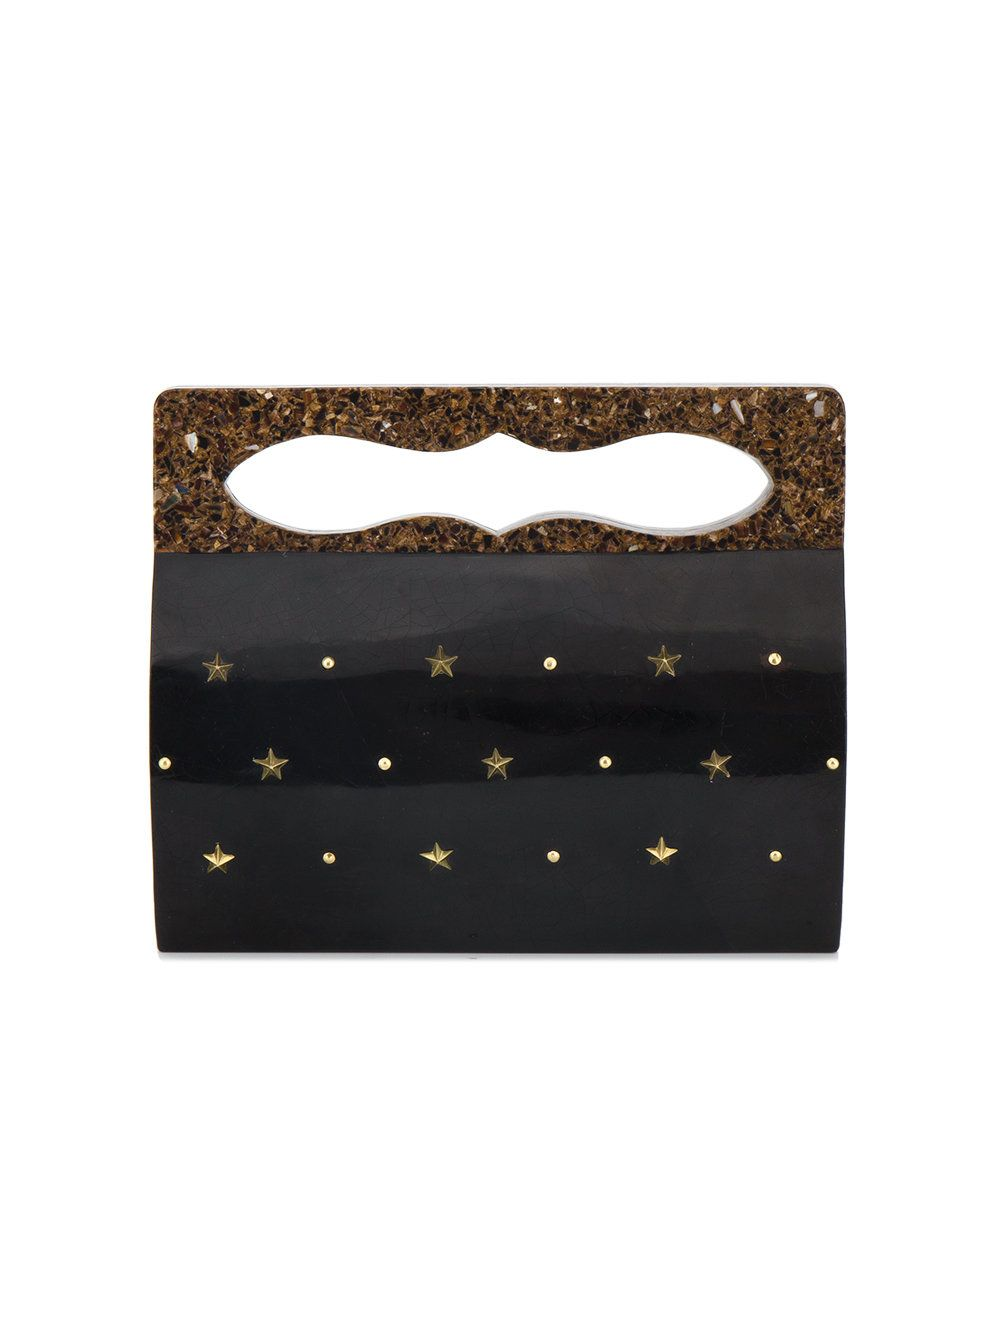 b83370aea0c Nathalie Trad Juno stud embellished clutch   Edgy bags with an ...